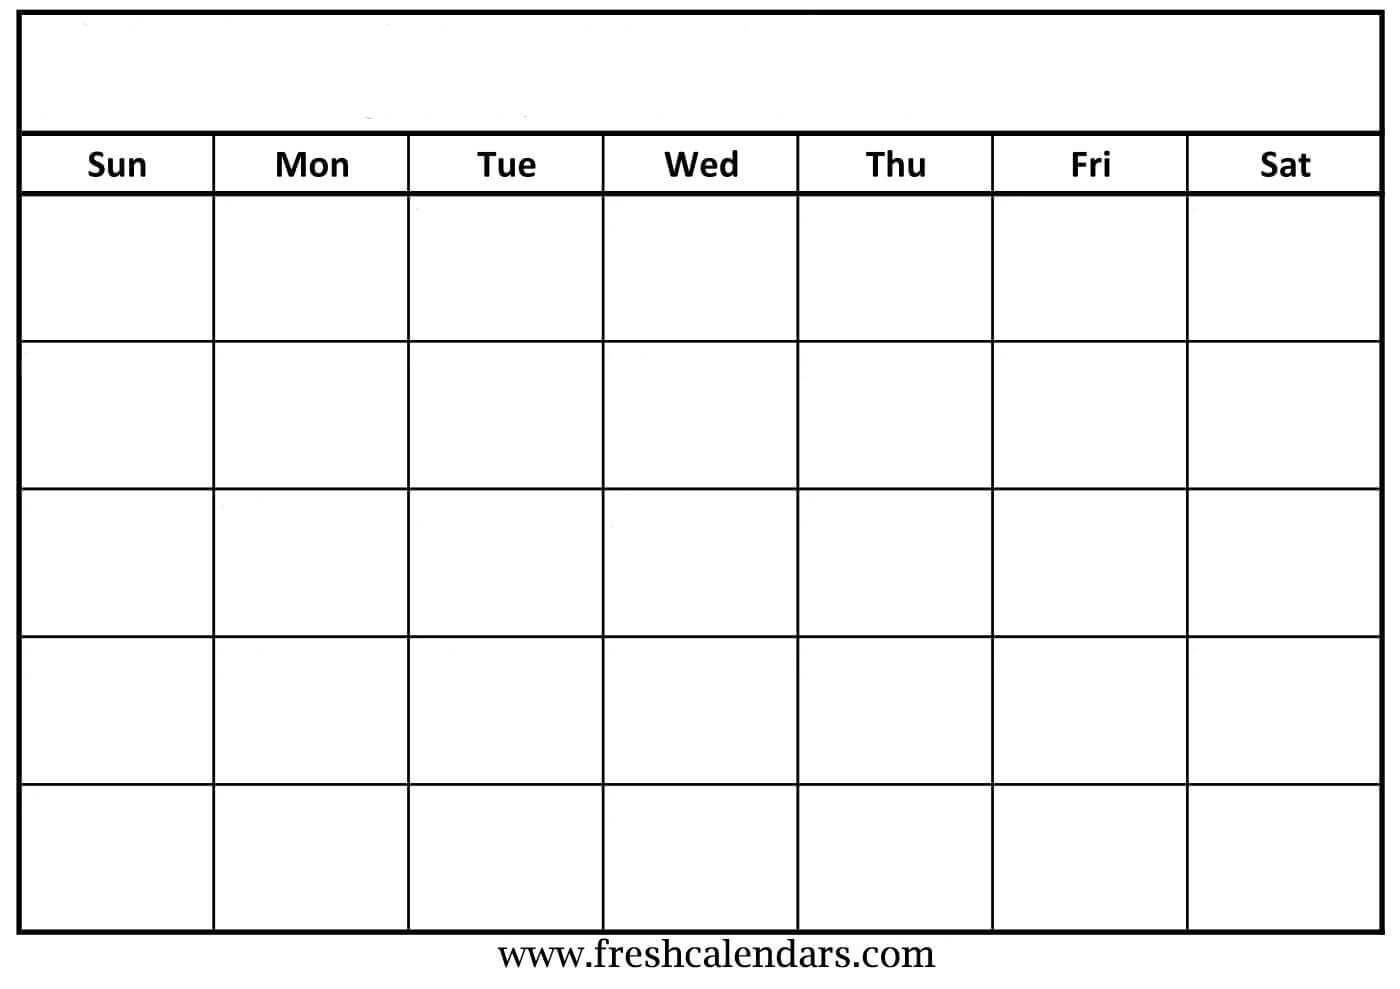 30 Blank Calendar Template 2019 | Andaluzseattle Template Within Blank Calander Template